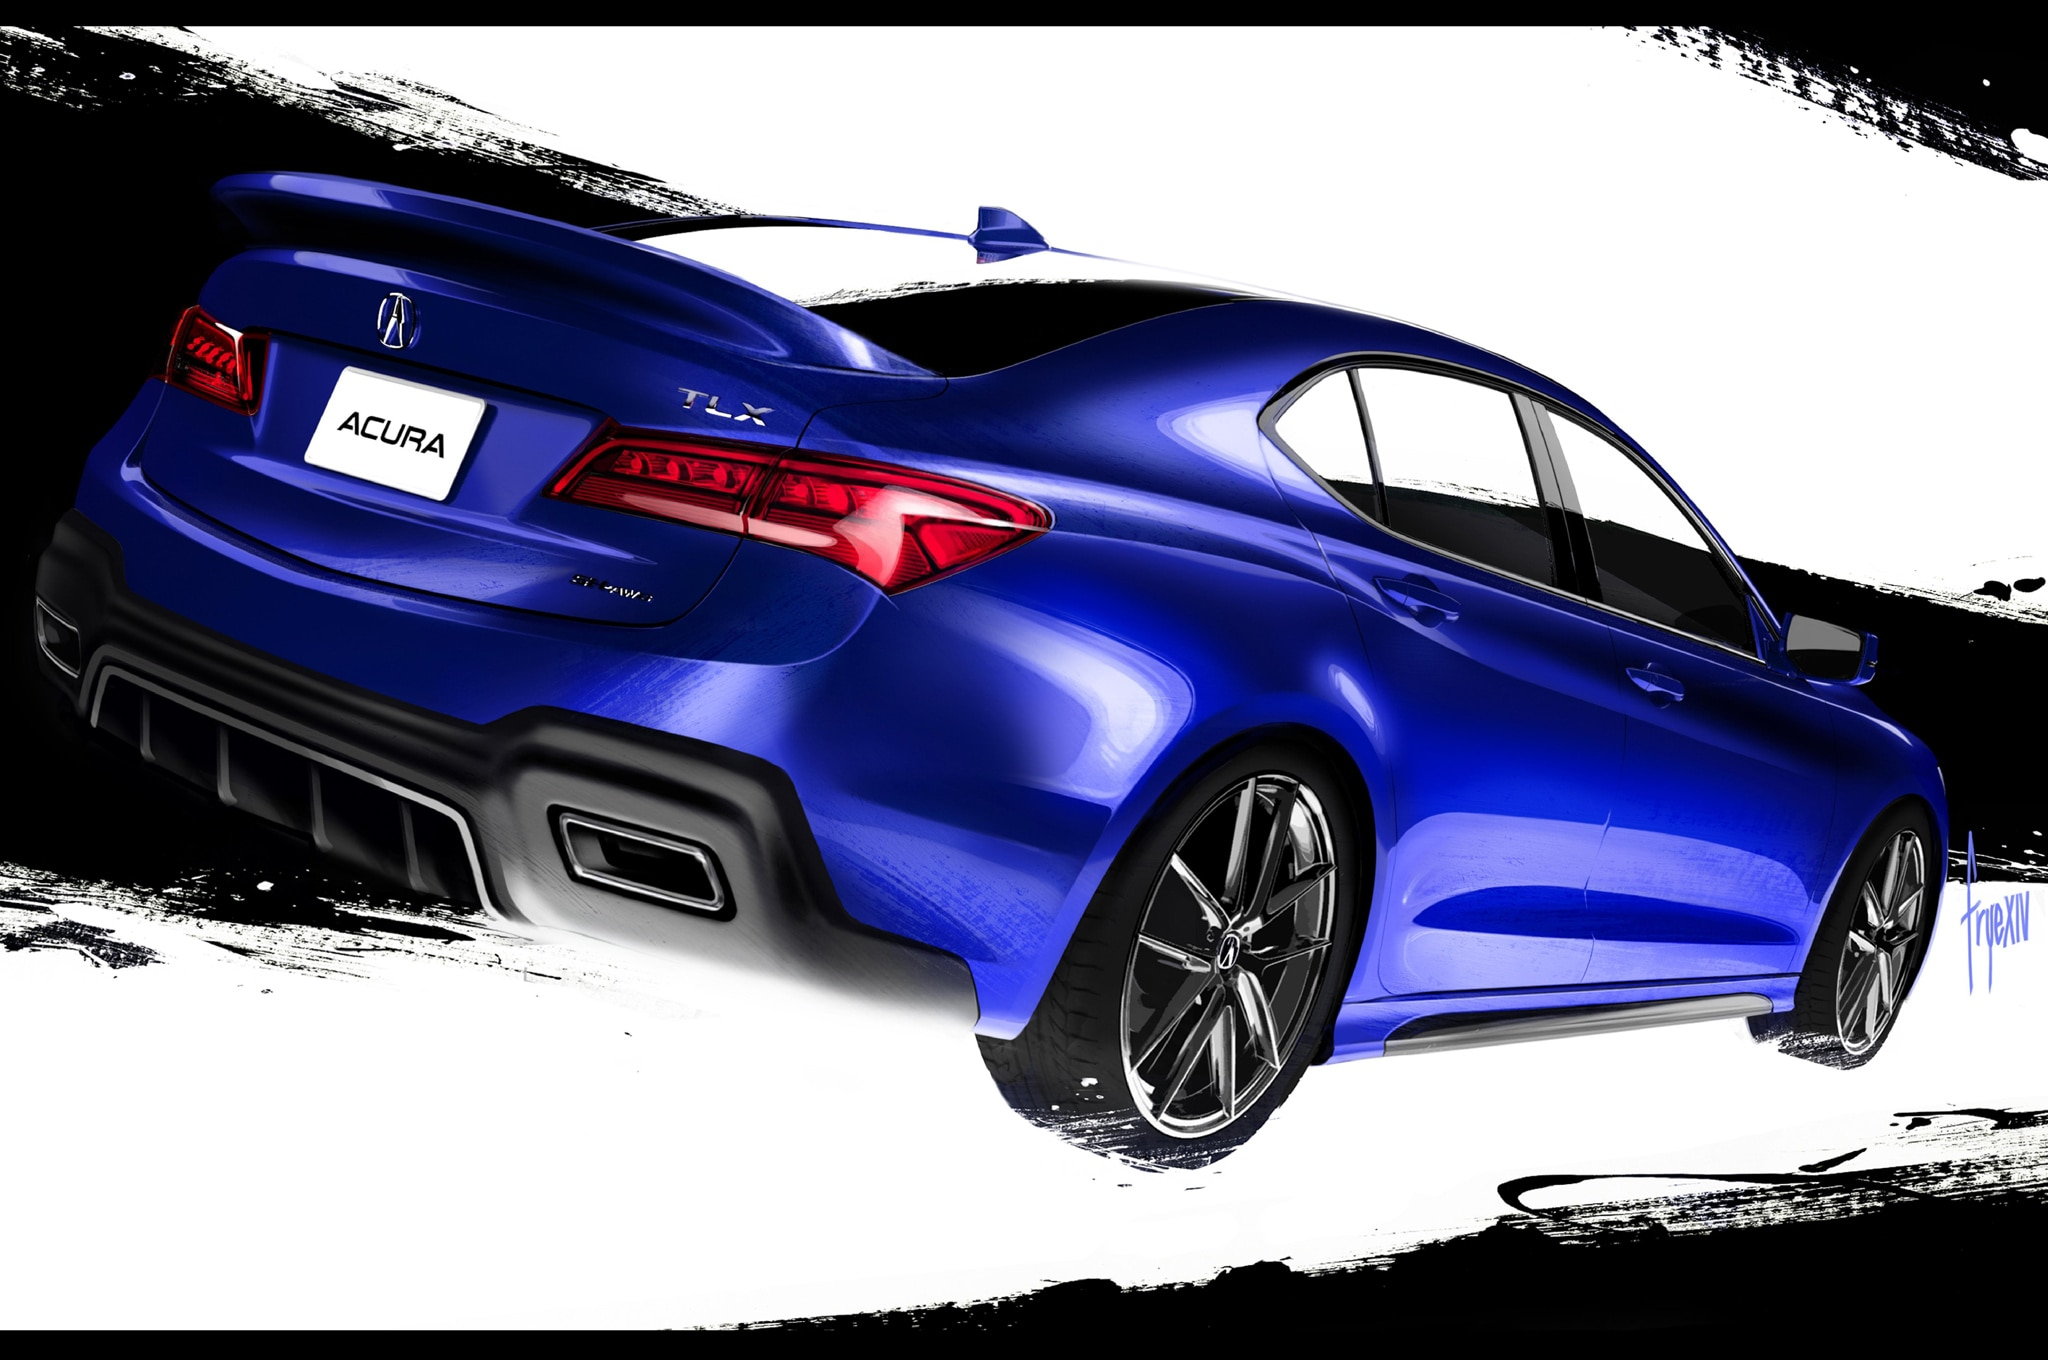 2015 acura tlx tuned by galpin heading to sema. Black Bedroom Furniture Sets. Home Design Ideas